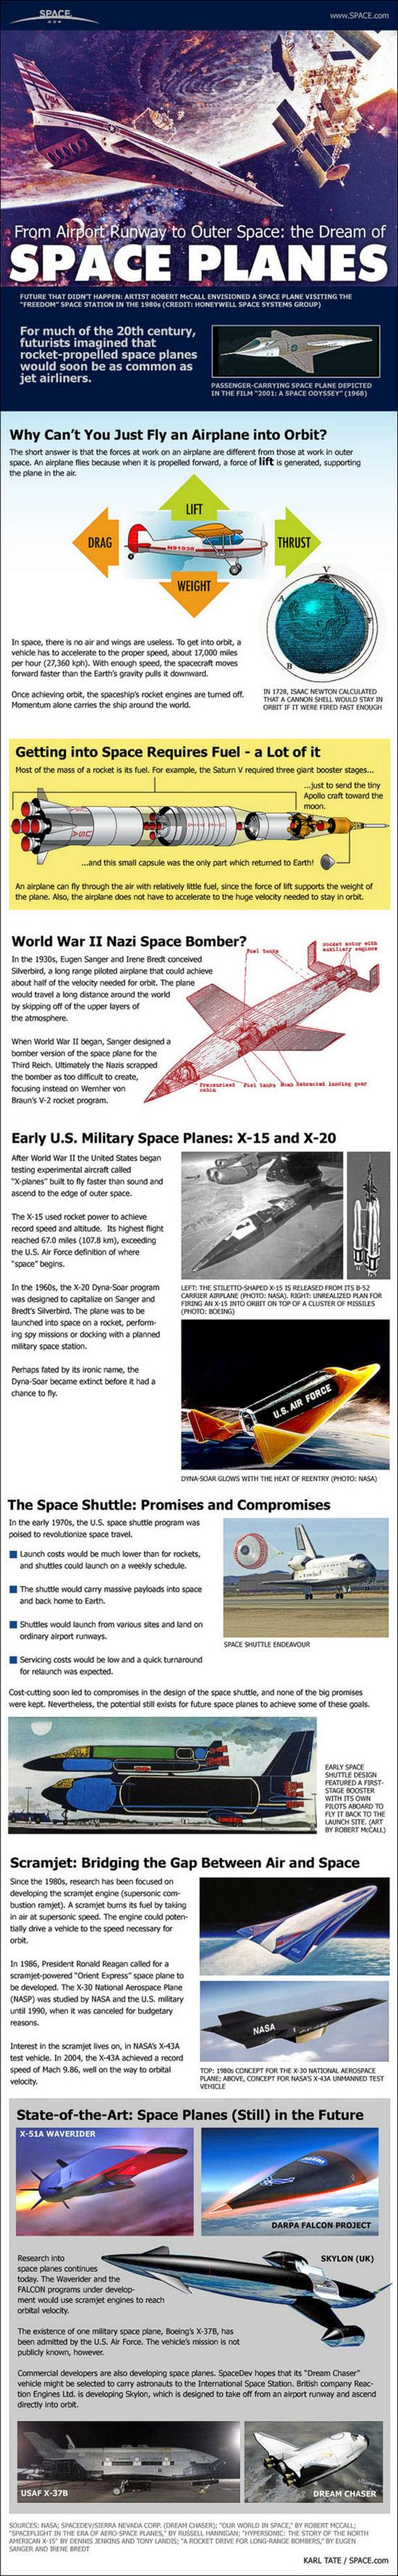 See how engineers turned the dream of winged spaceship into reality with NASA's space shuttle in this SPACE.com infographic.